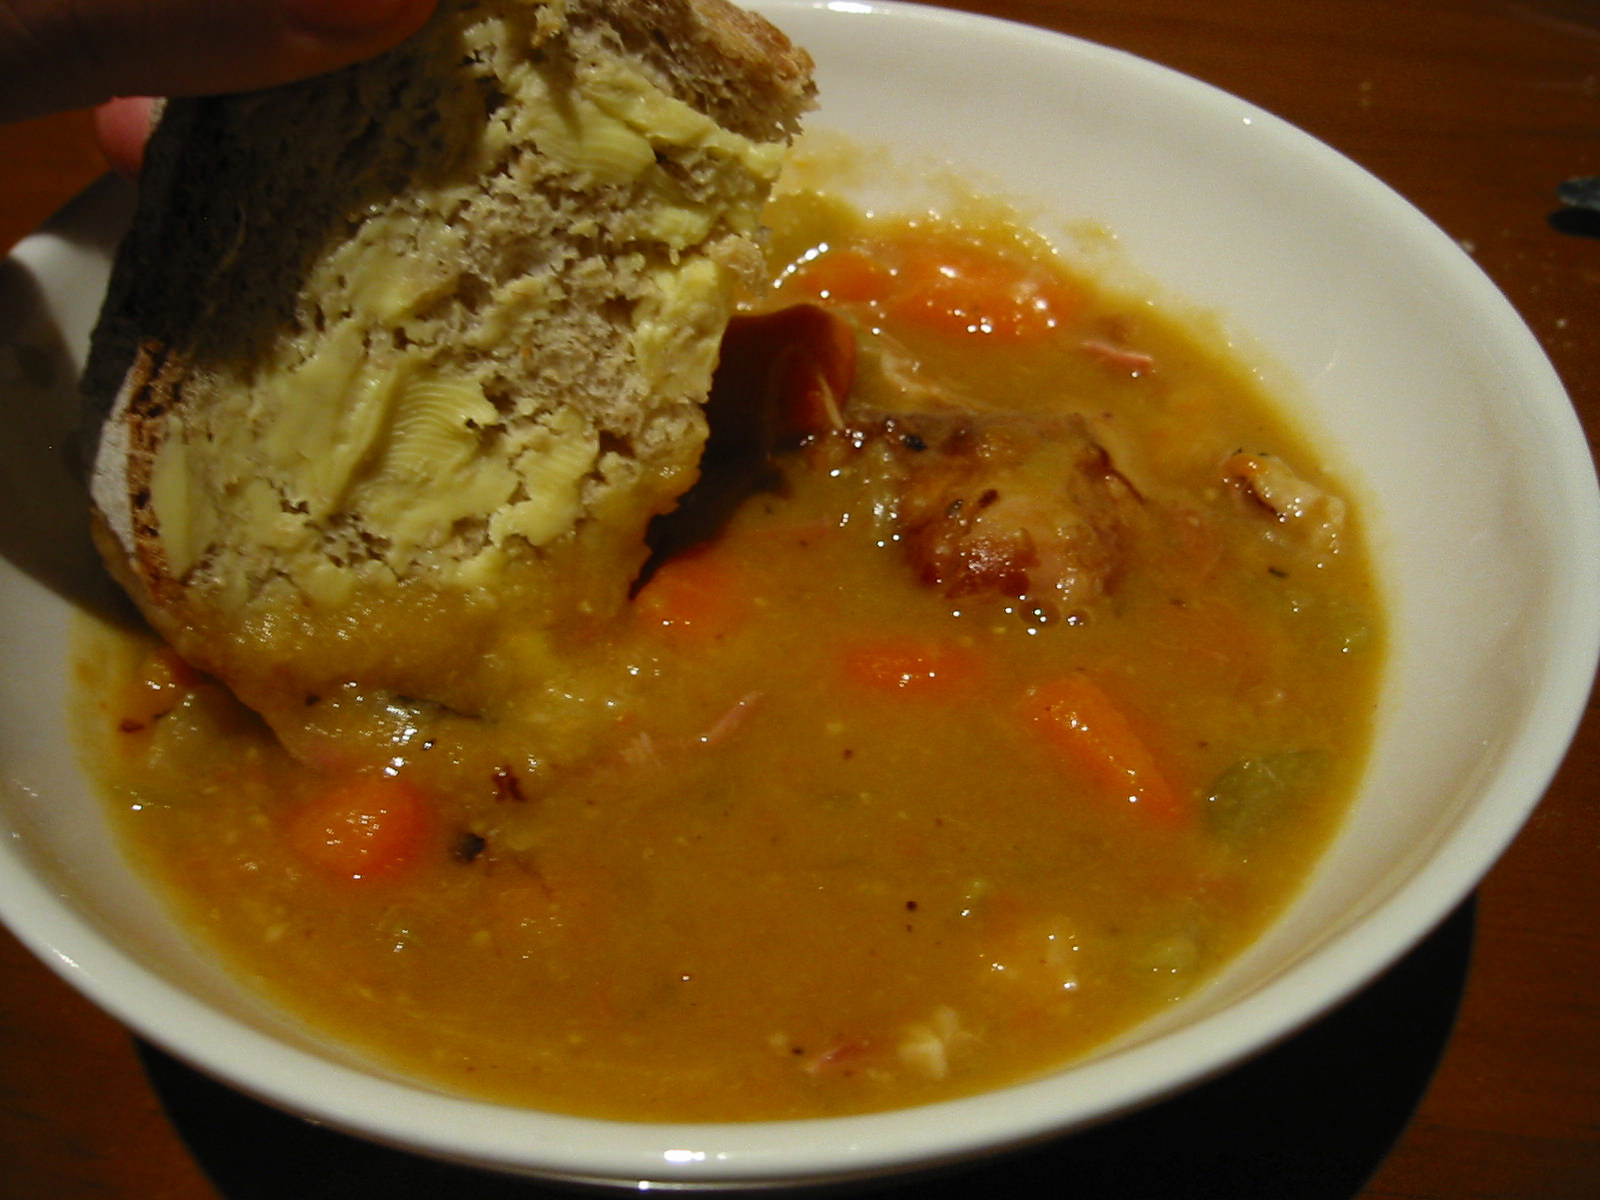 Pea and ham soup, bread dunking